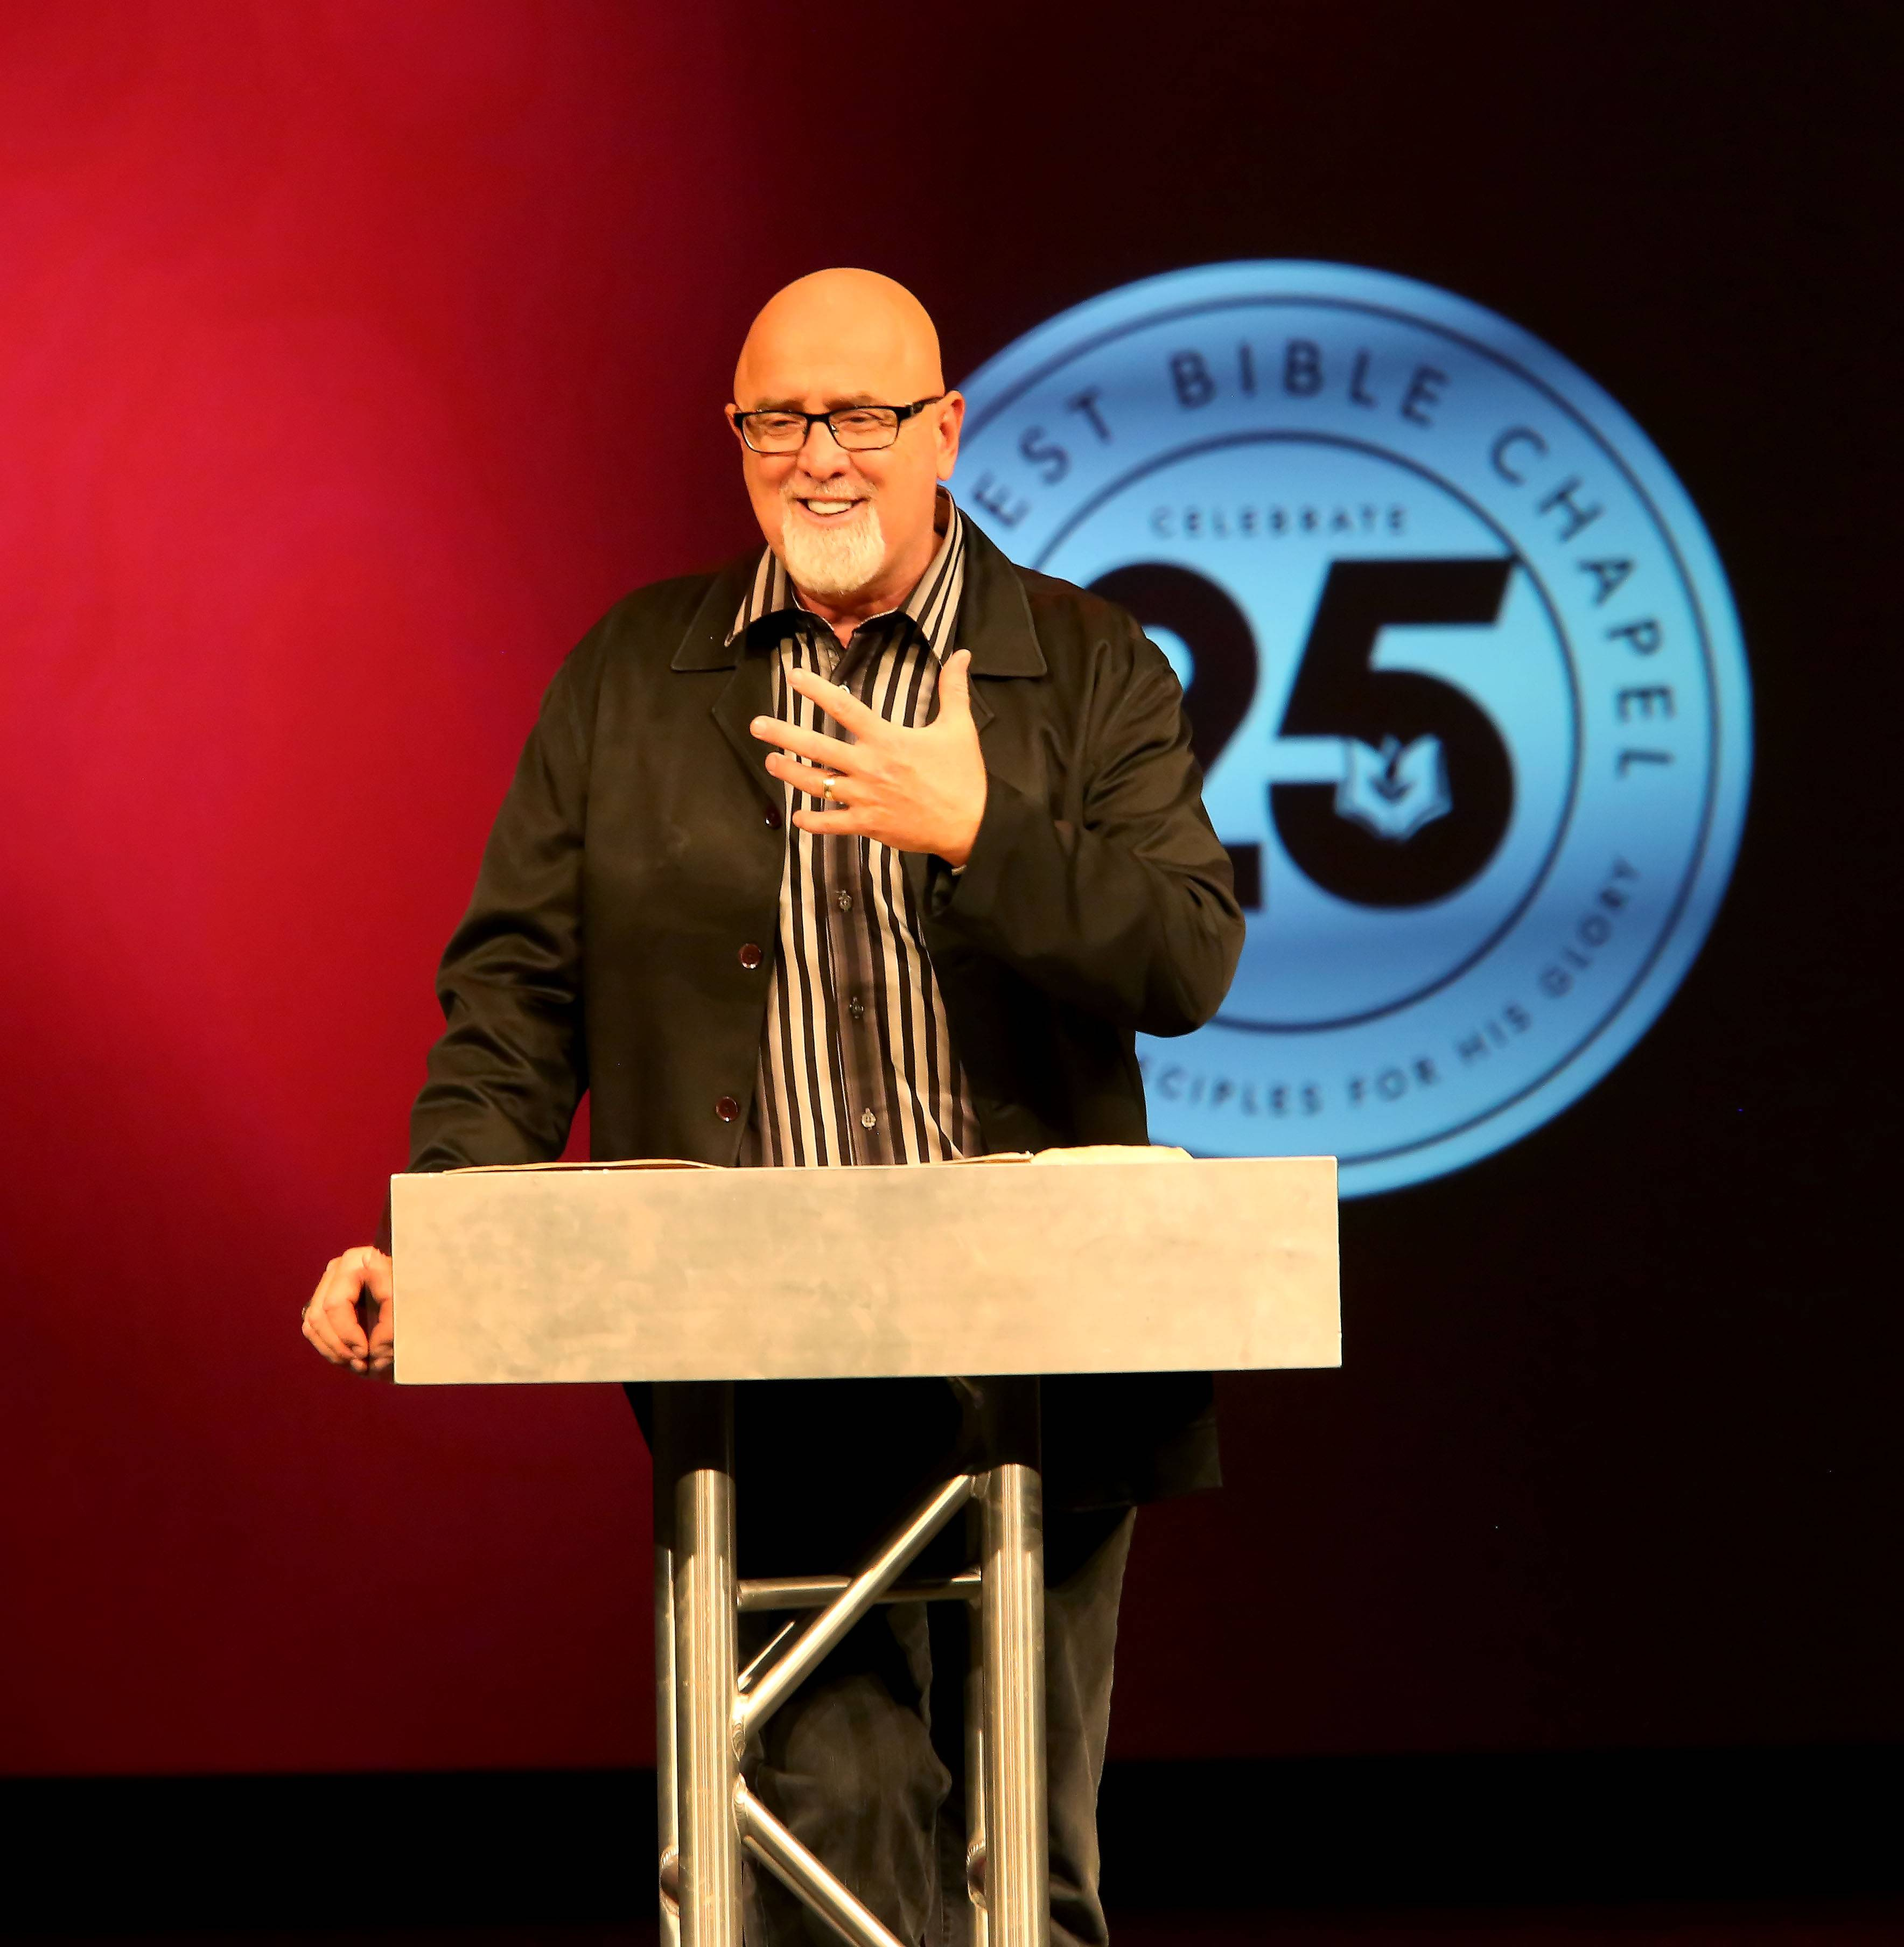 James MacDonald preaches at Harvest Bible Chapel in Elgin.